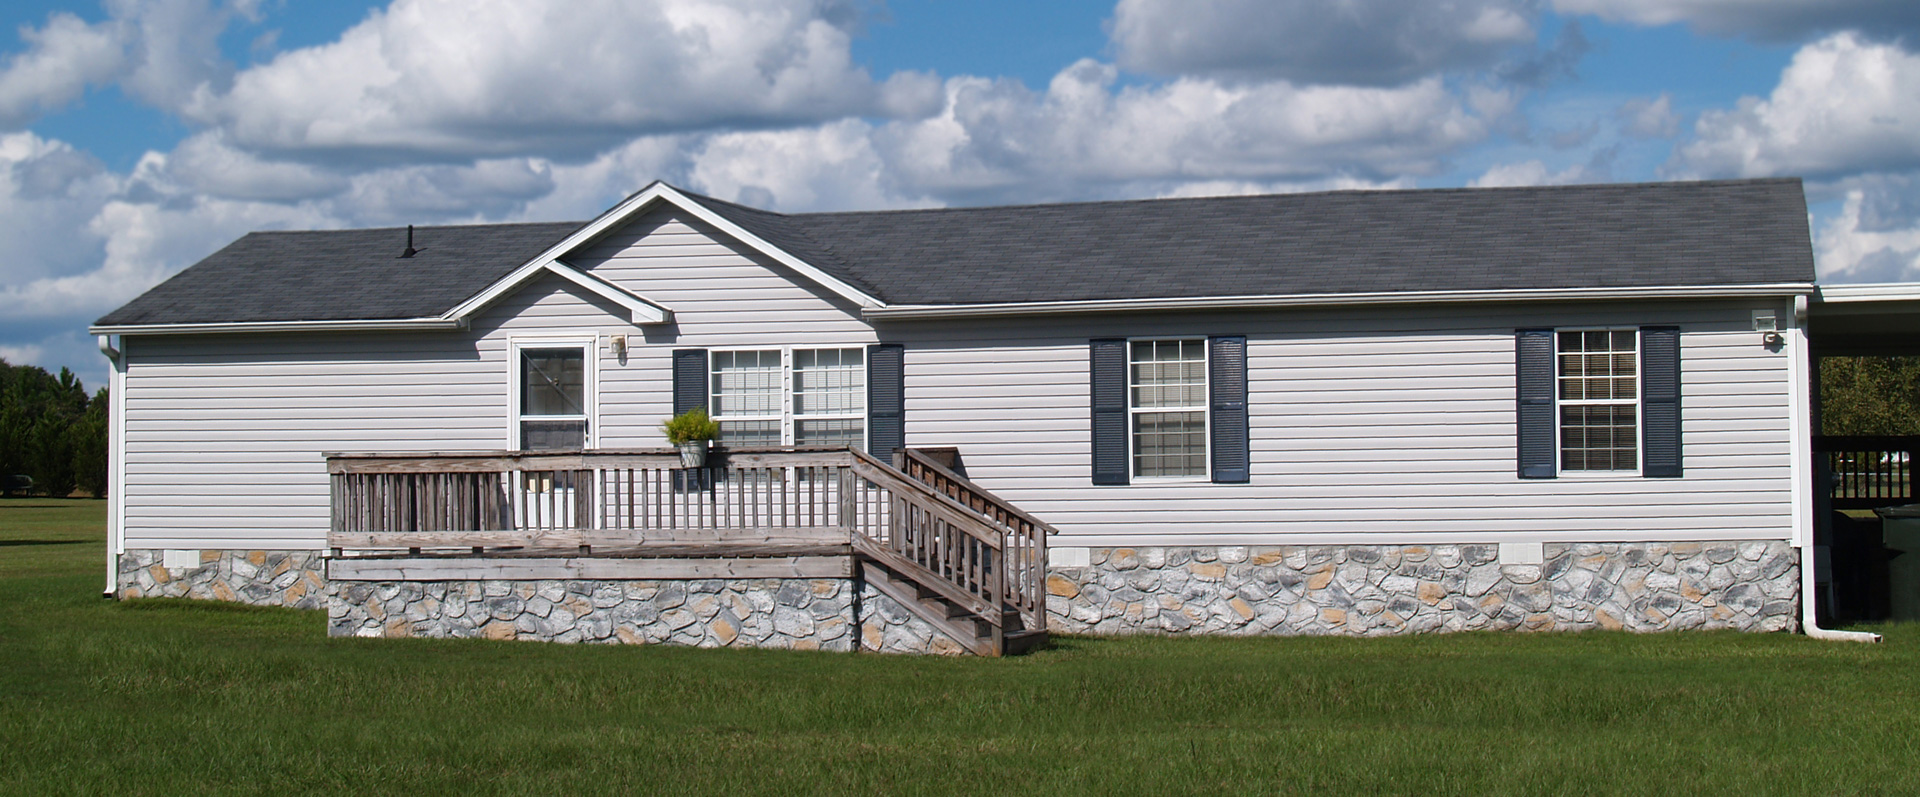 Mobile home foundation inspectionsstructural engineer for Structural engineer for houses